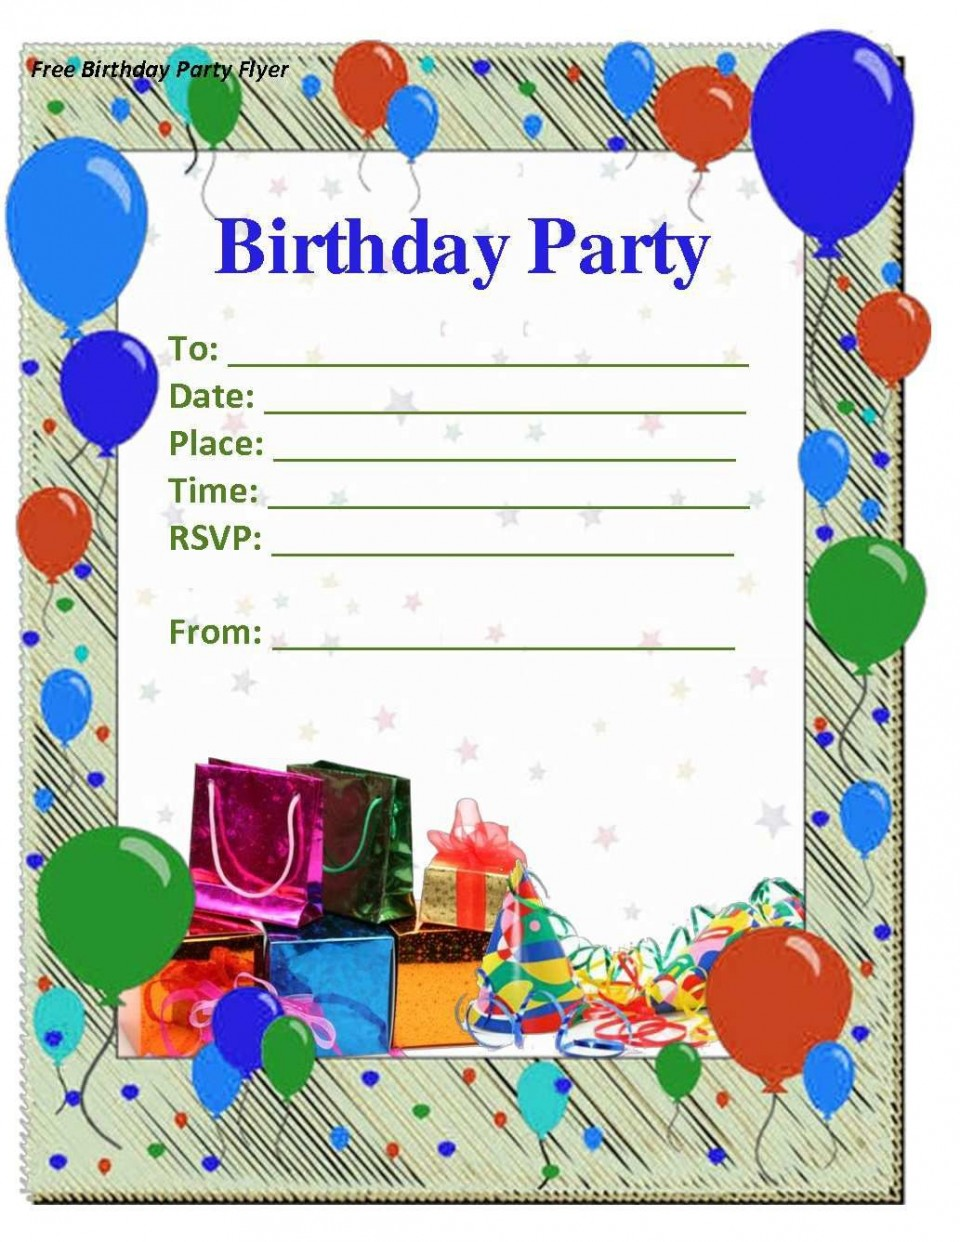 003 Rare Blank Birthday Invitation Template For Microsoft Word Highest Clarity 960